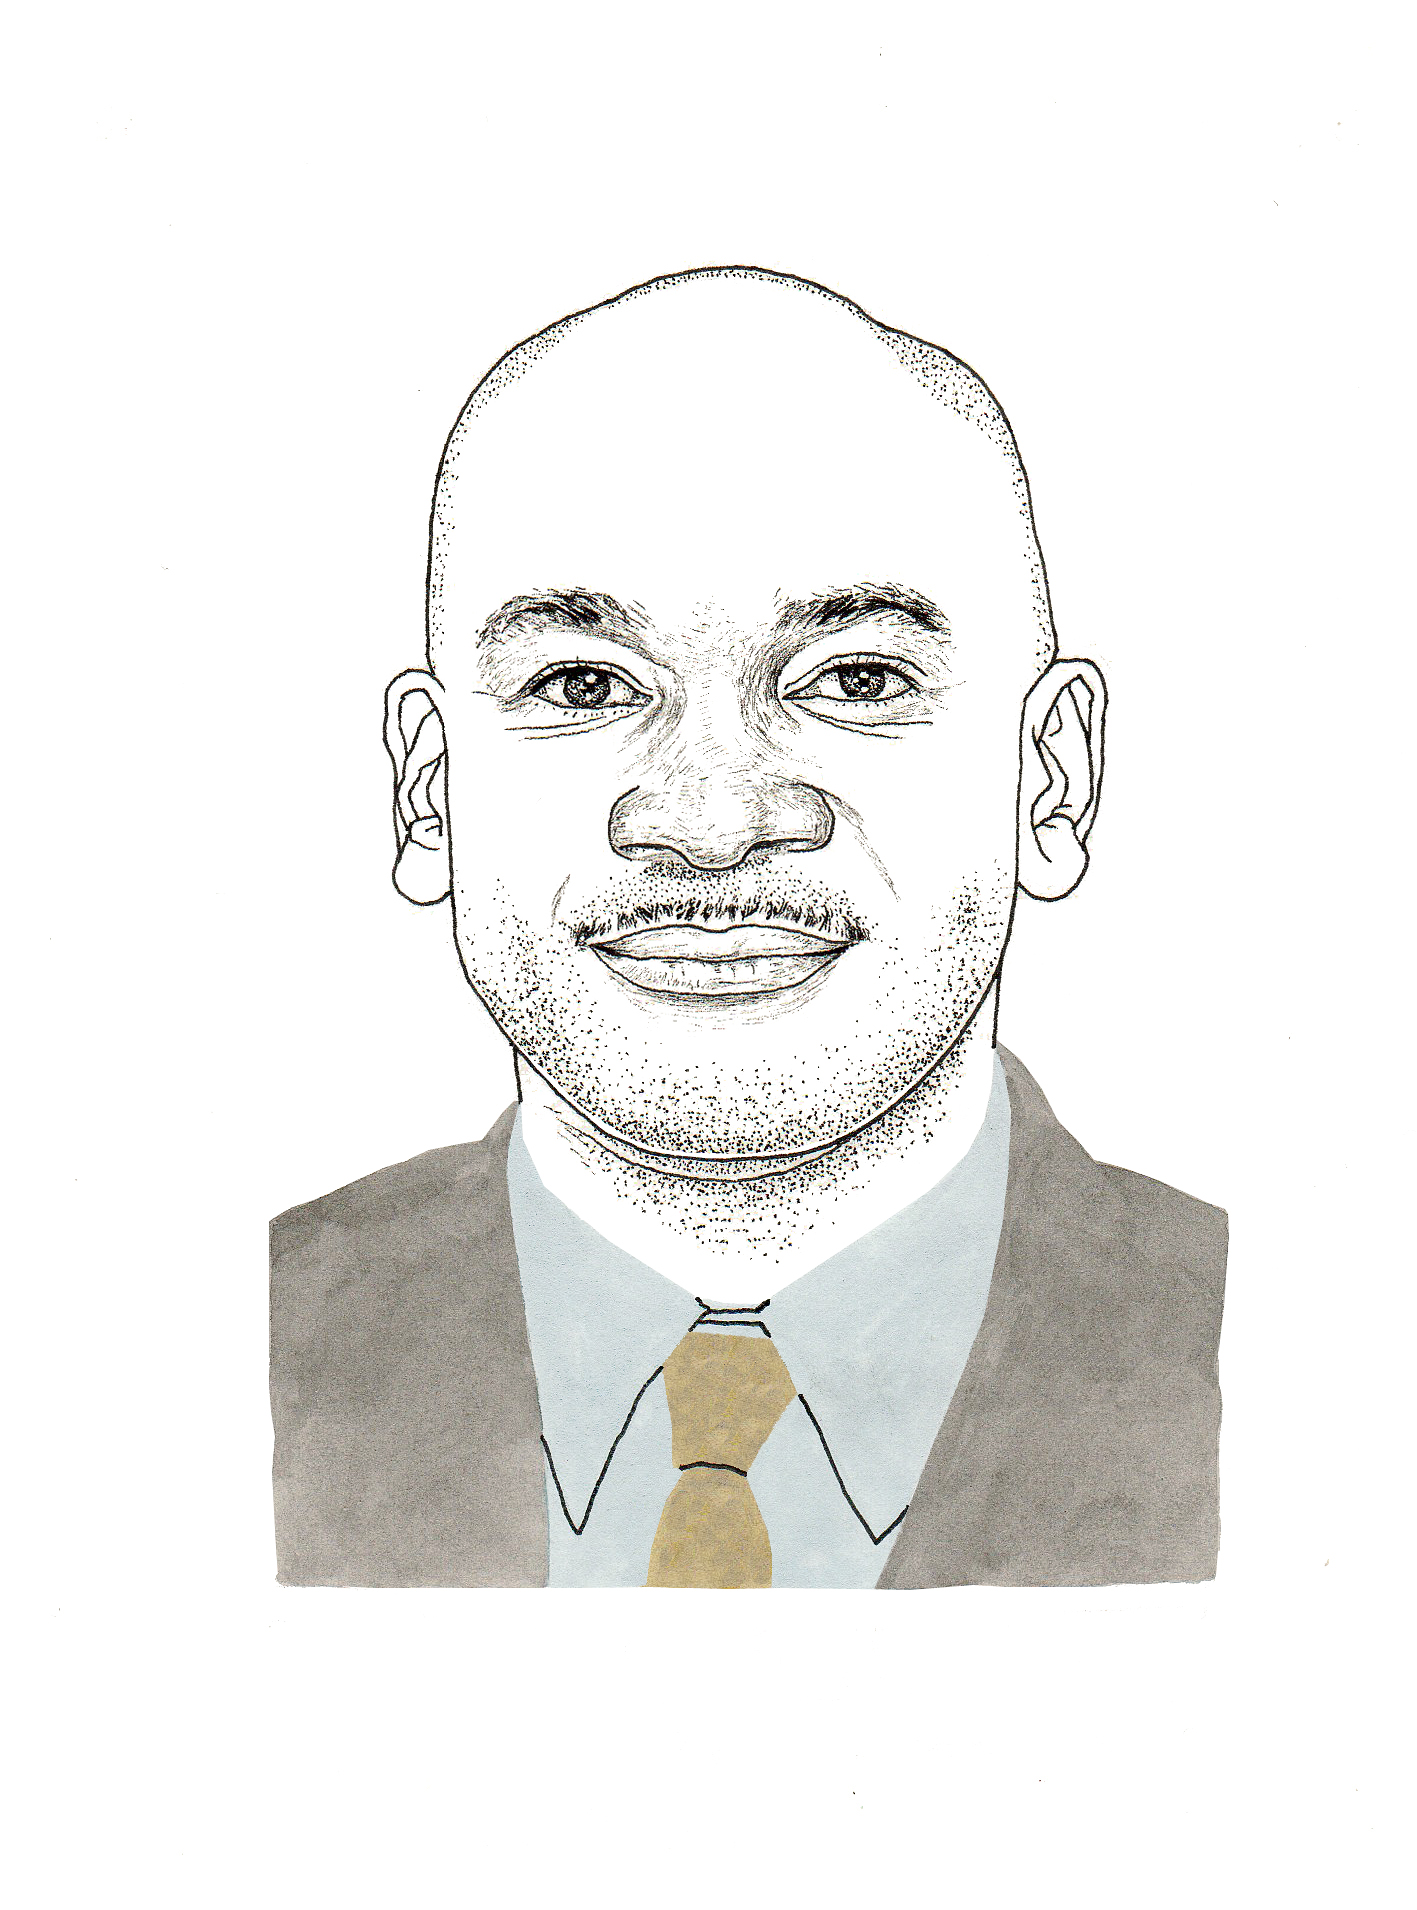 Brian K. Perkins (Illustration by Adam Cruft)